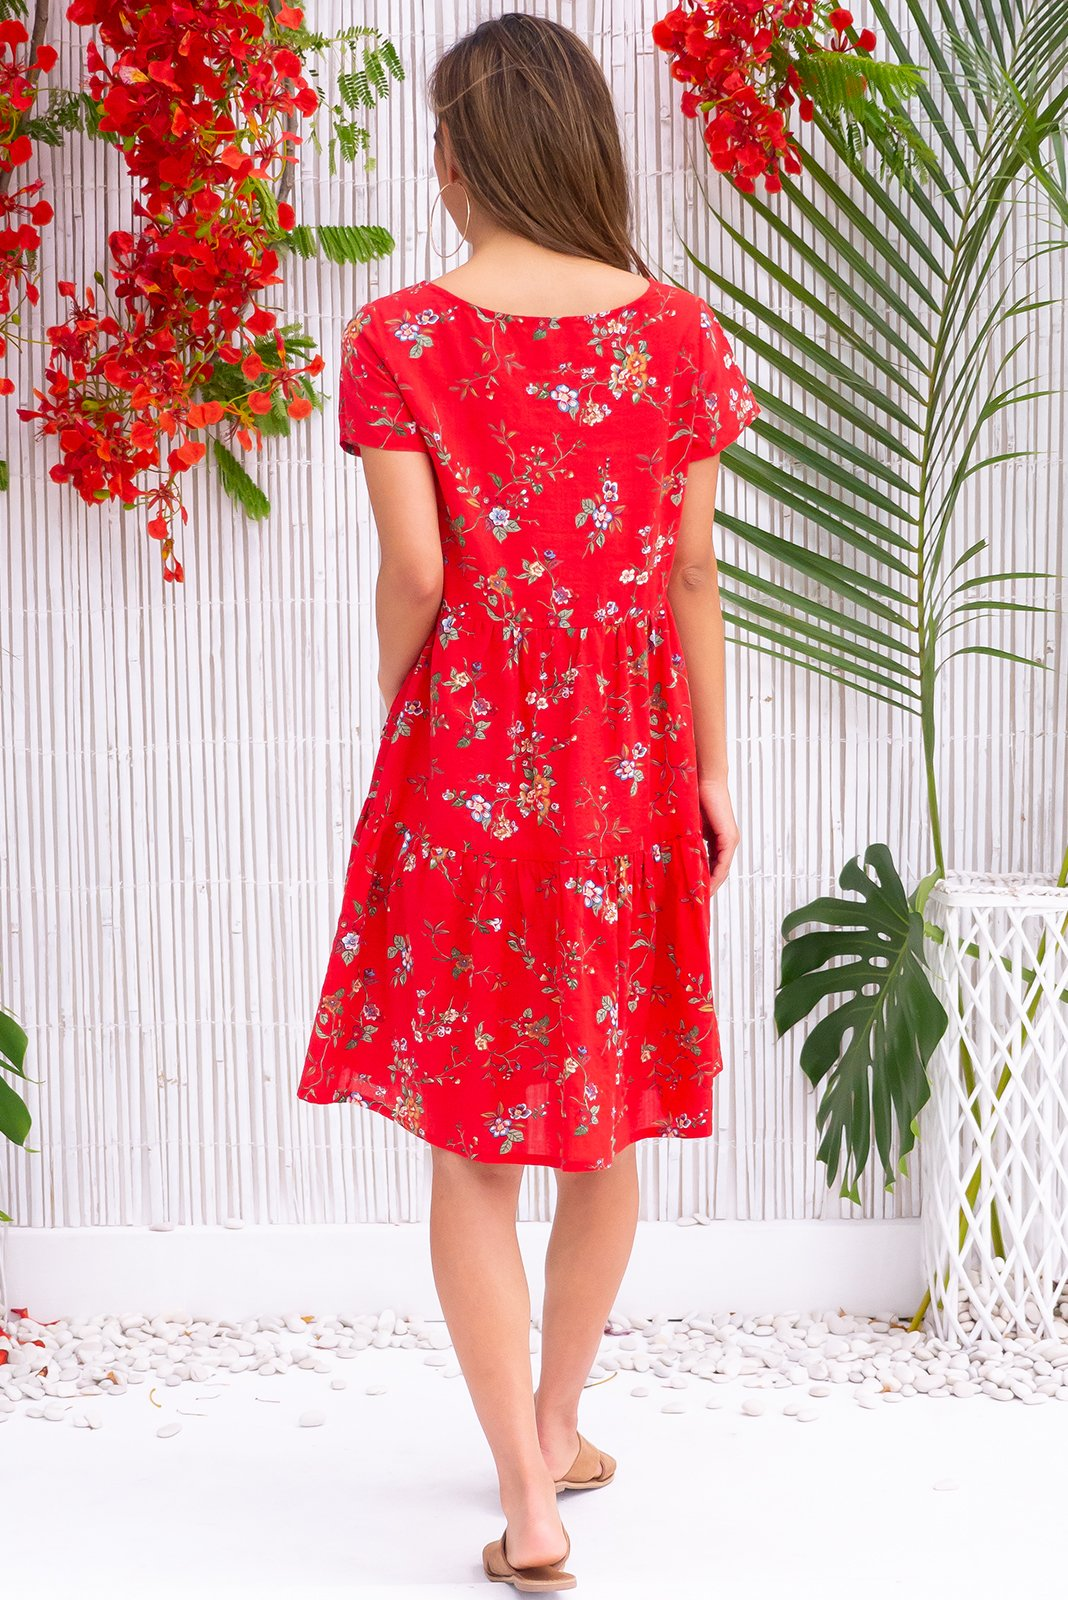 Lulu Elle Ruby Red Dress, bohemian summer style, 100% cotton, slightly sheer, scooped neckline, cap sleeves, side pockets, tiered skirt, bright and bold red base with small white, gold and forest green botanical print.